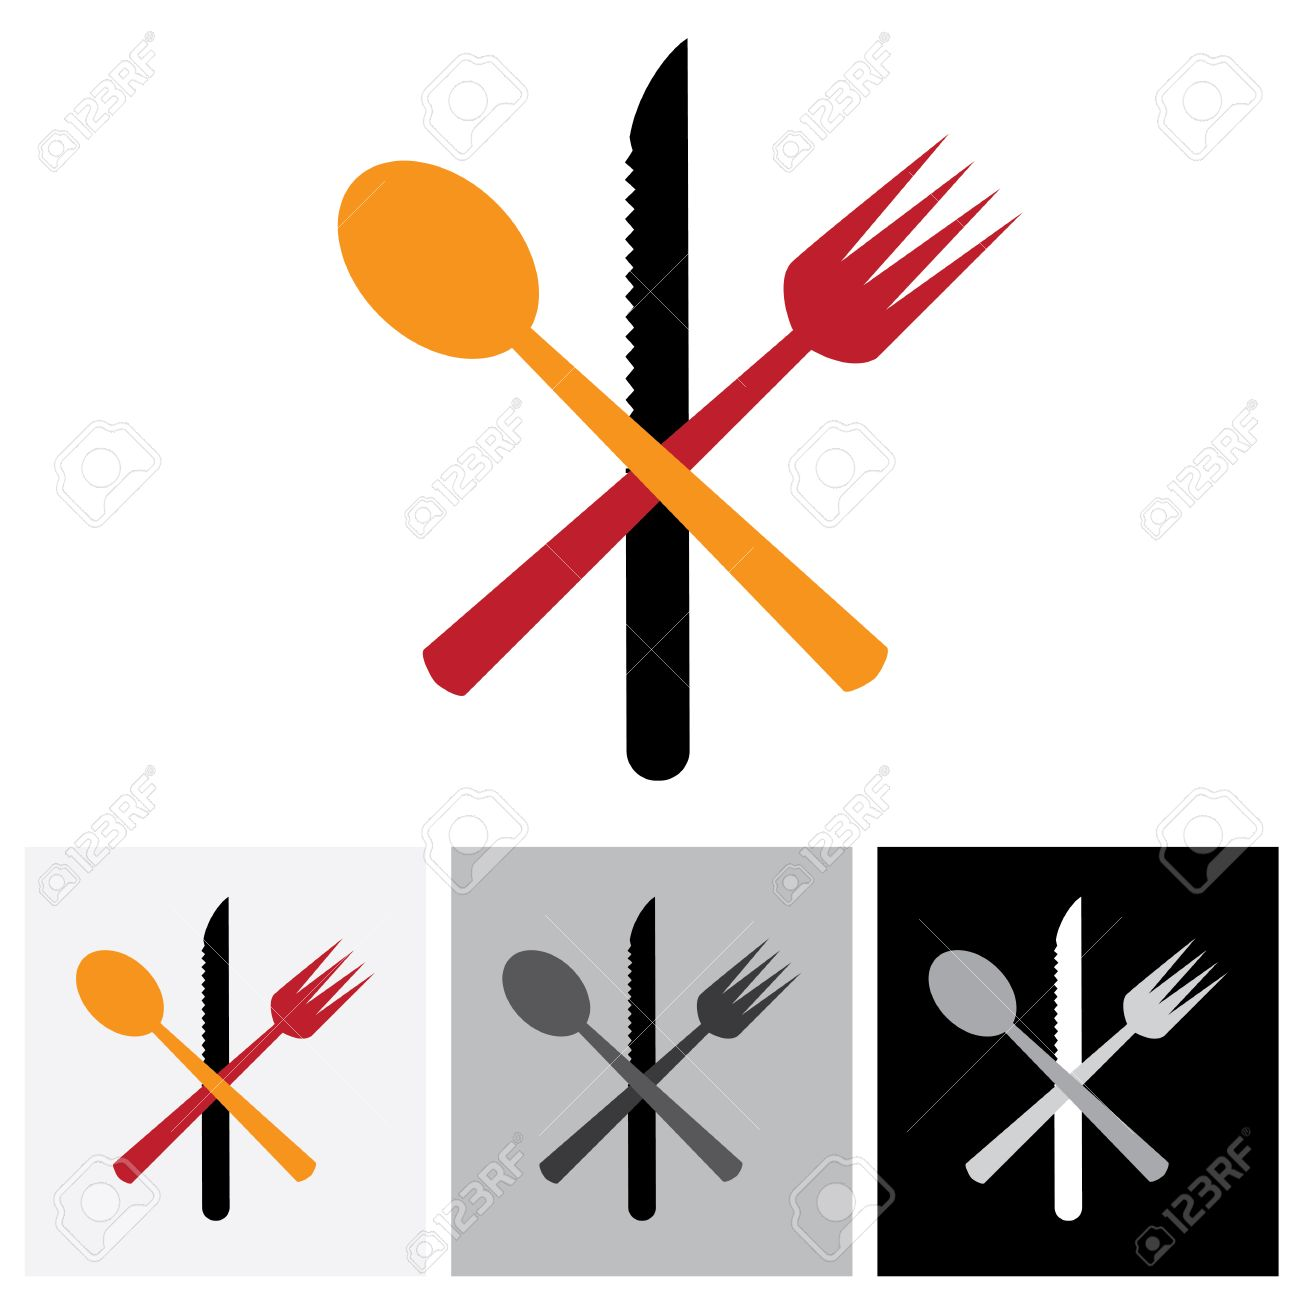 Abstract icons symbols of spoon knife fork vector logo abstract icons symbols of spoon knife fork vector logo icon this buycottarizona Choice Image